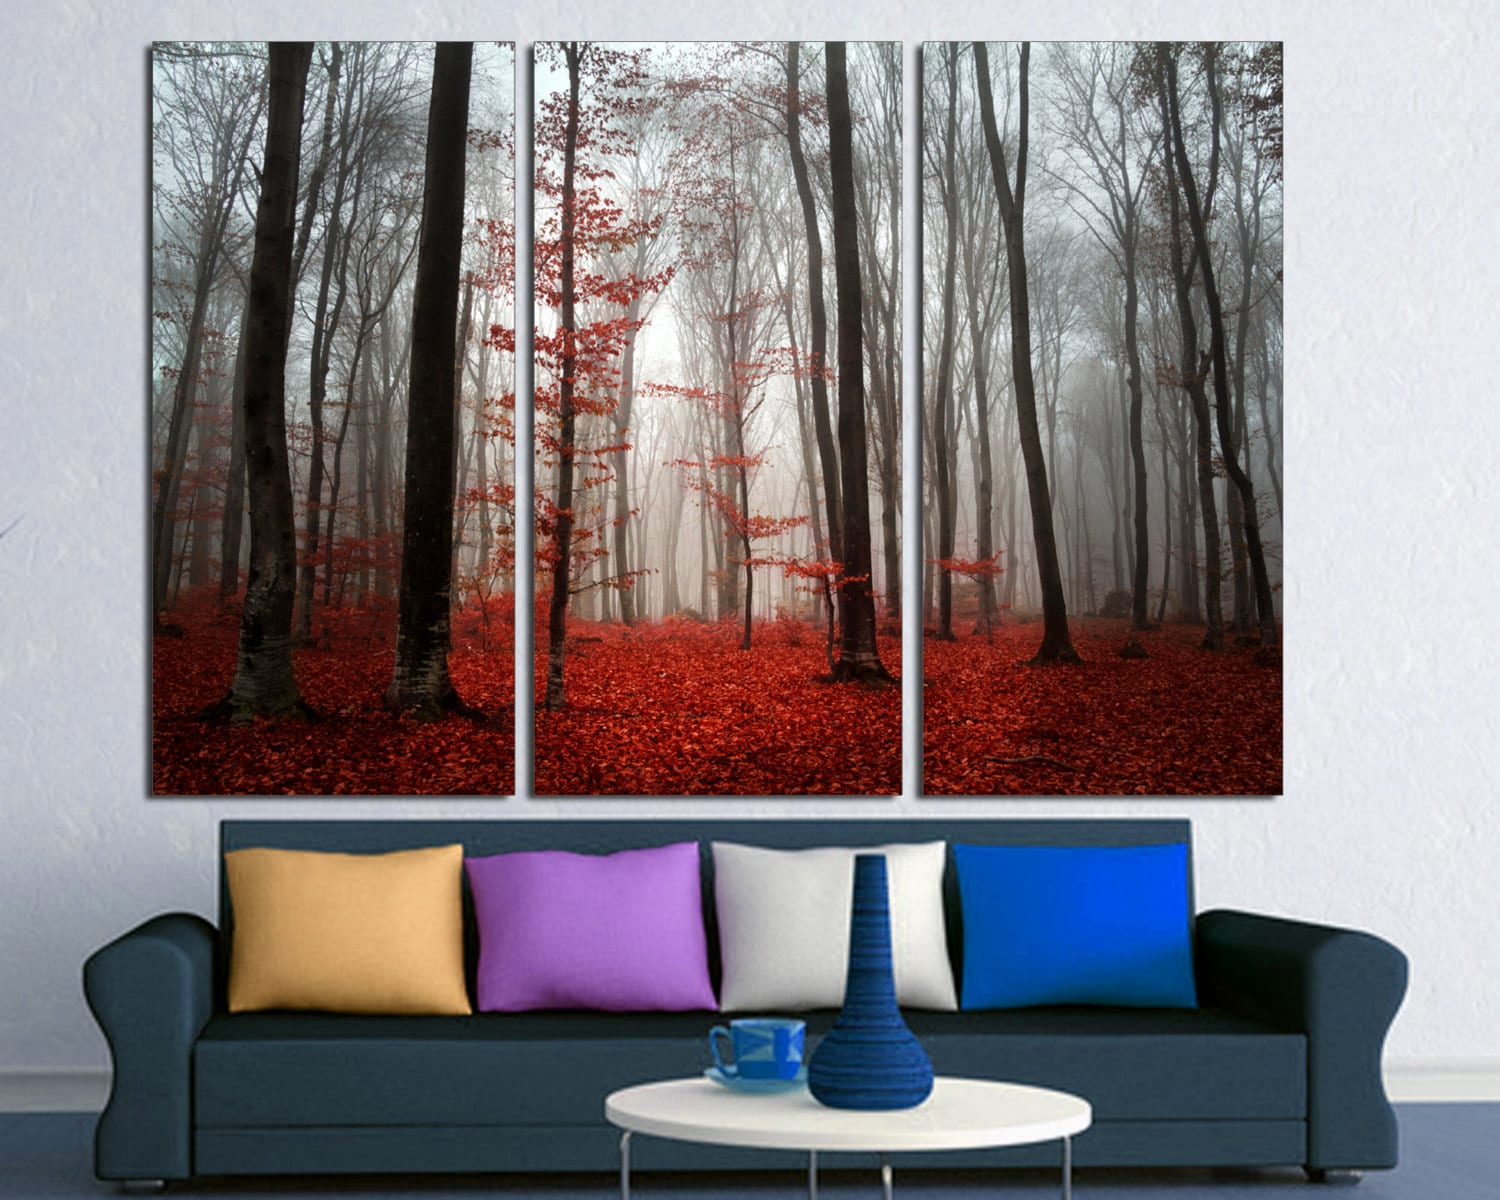 3 Panel Wall Art Classy Red Leaves Forest Trees Mist Canvas Print Wall Art3 Panel Inspiration